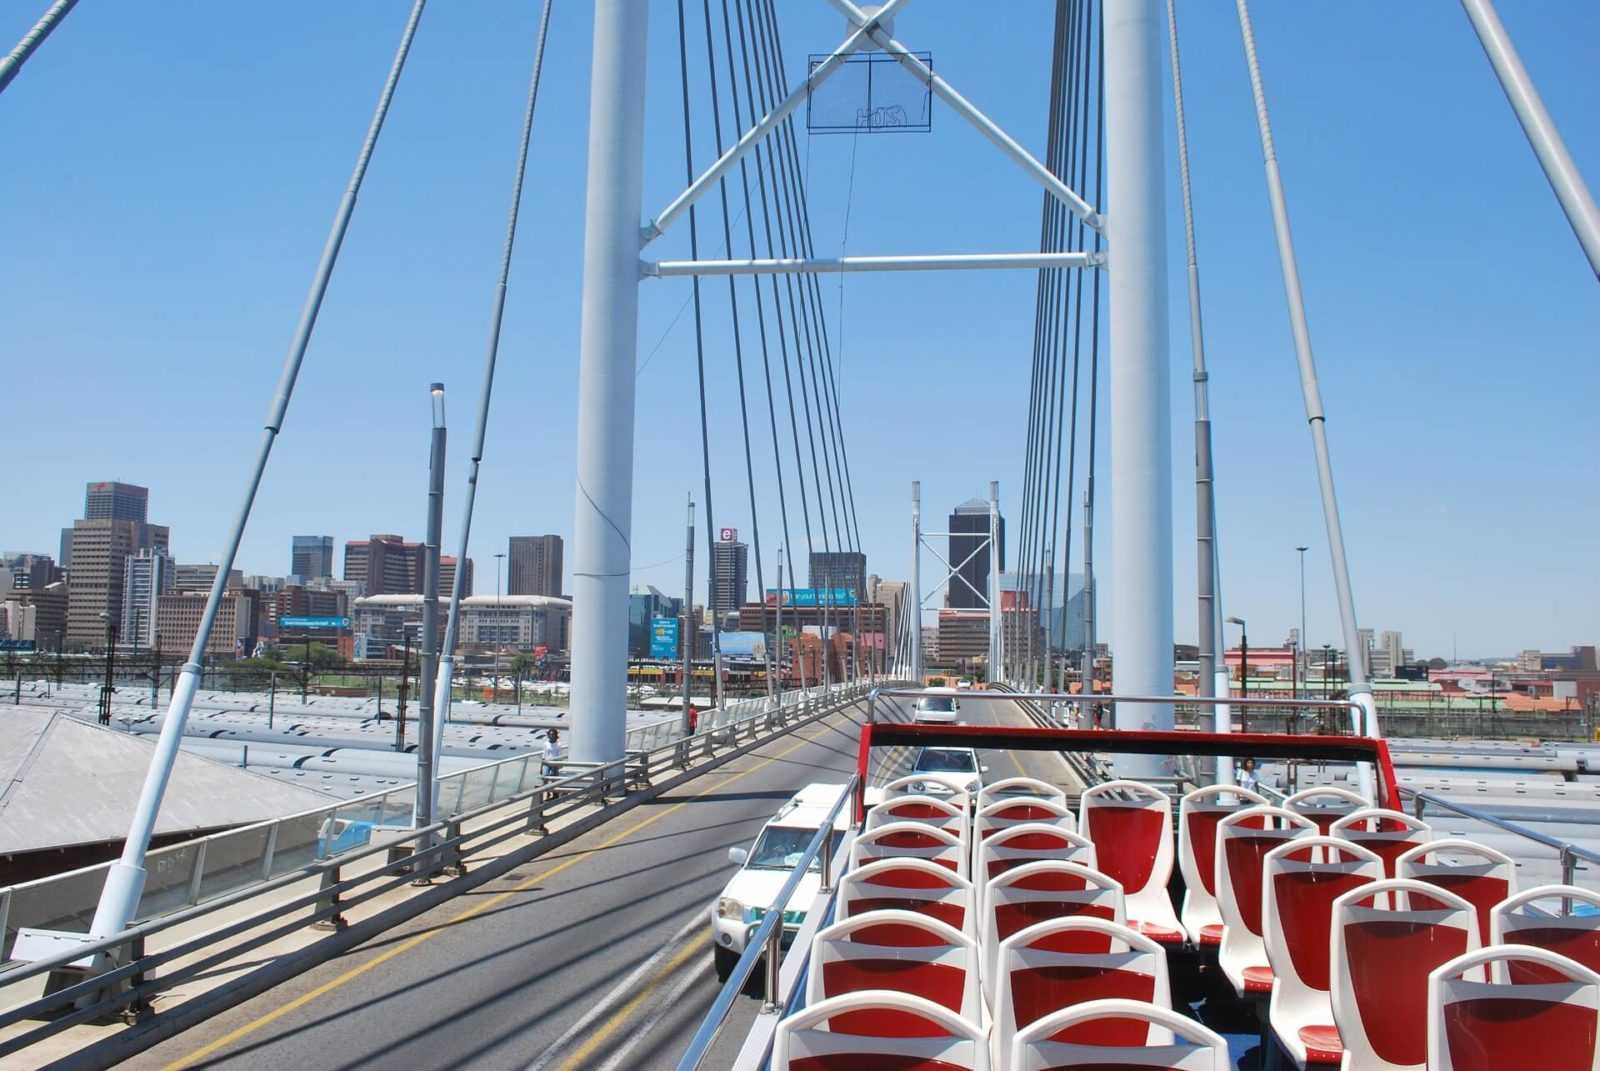 Nelson Mandela Bridge - Things to do in Johannesburg